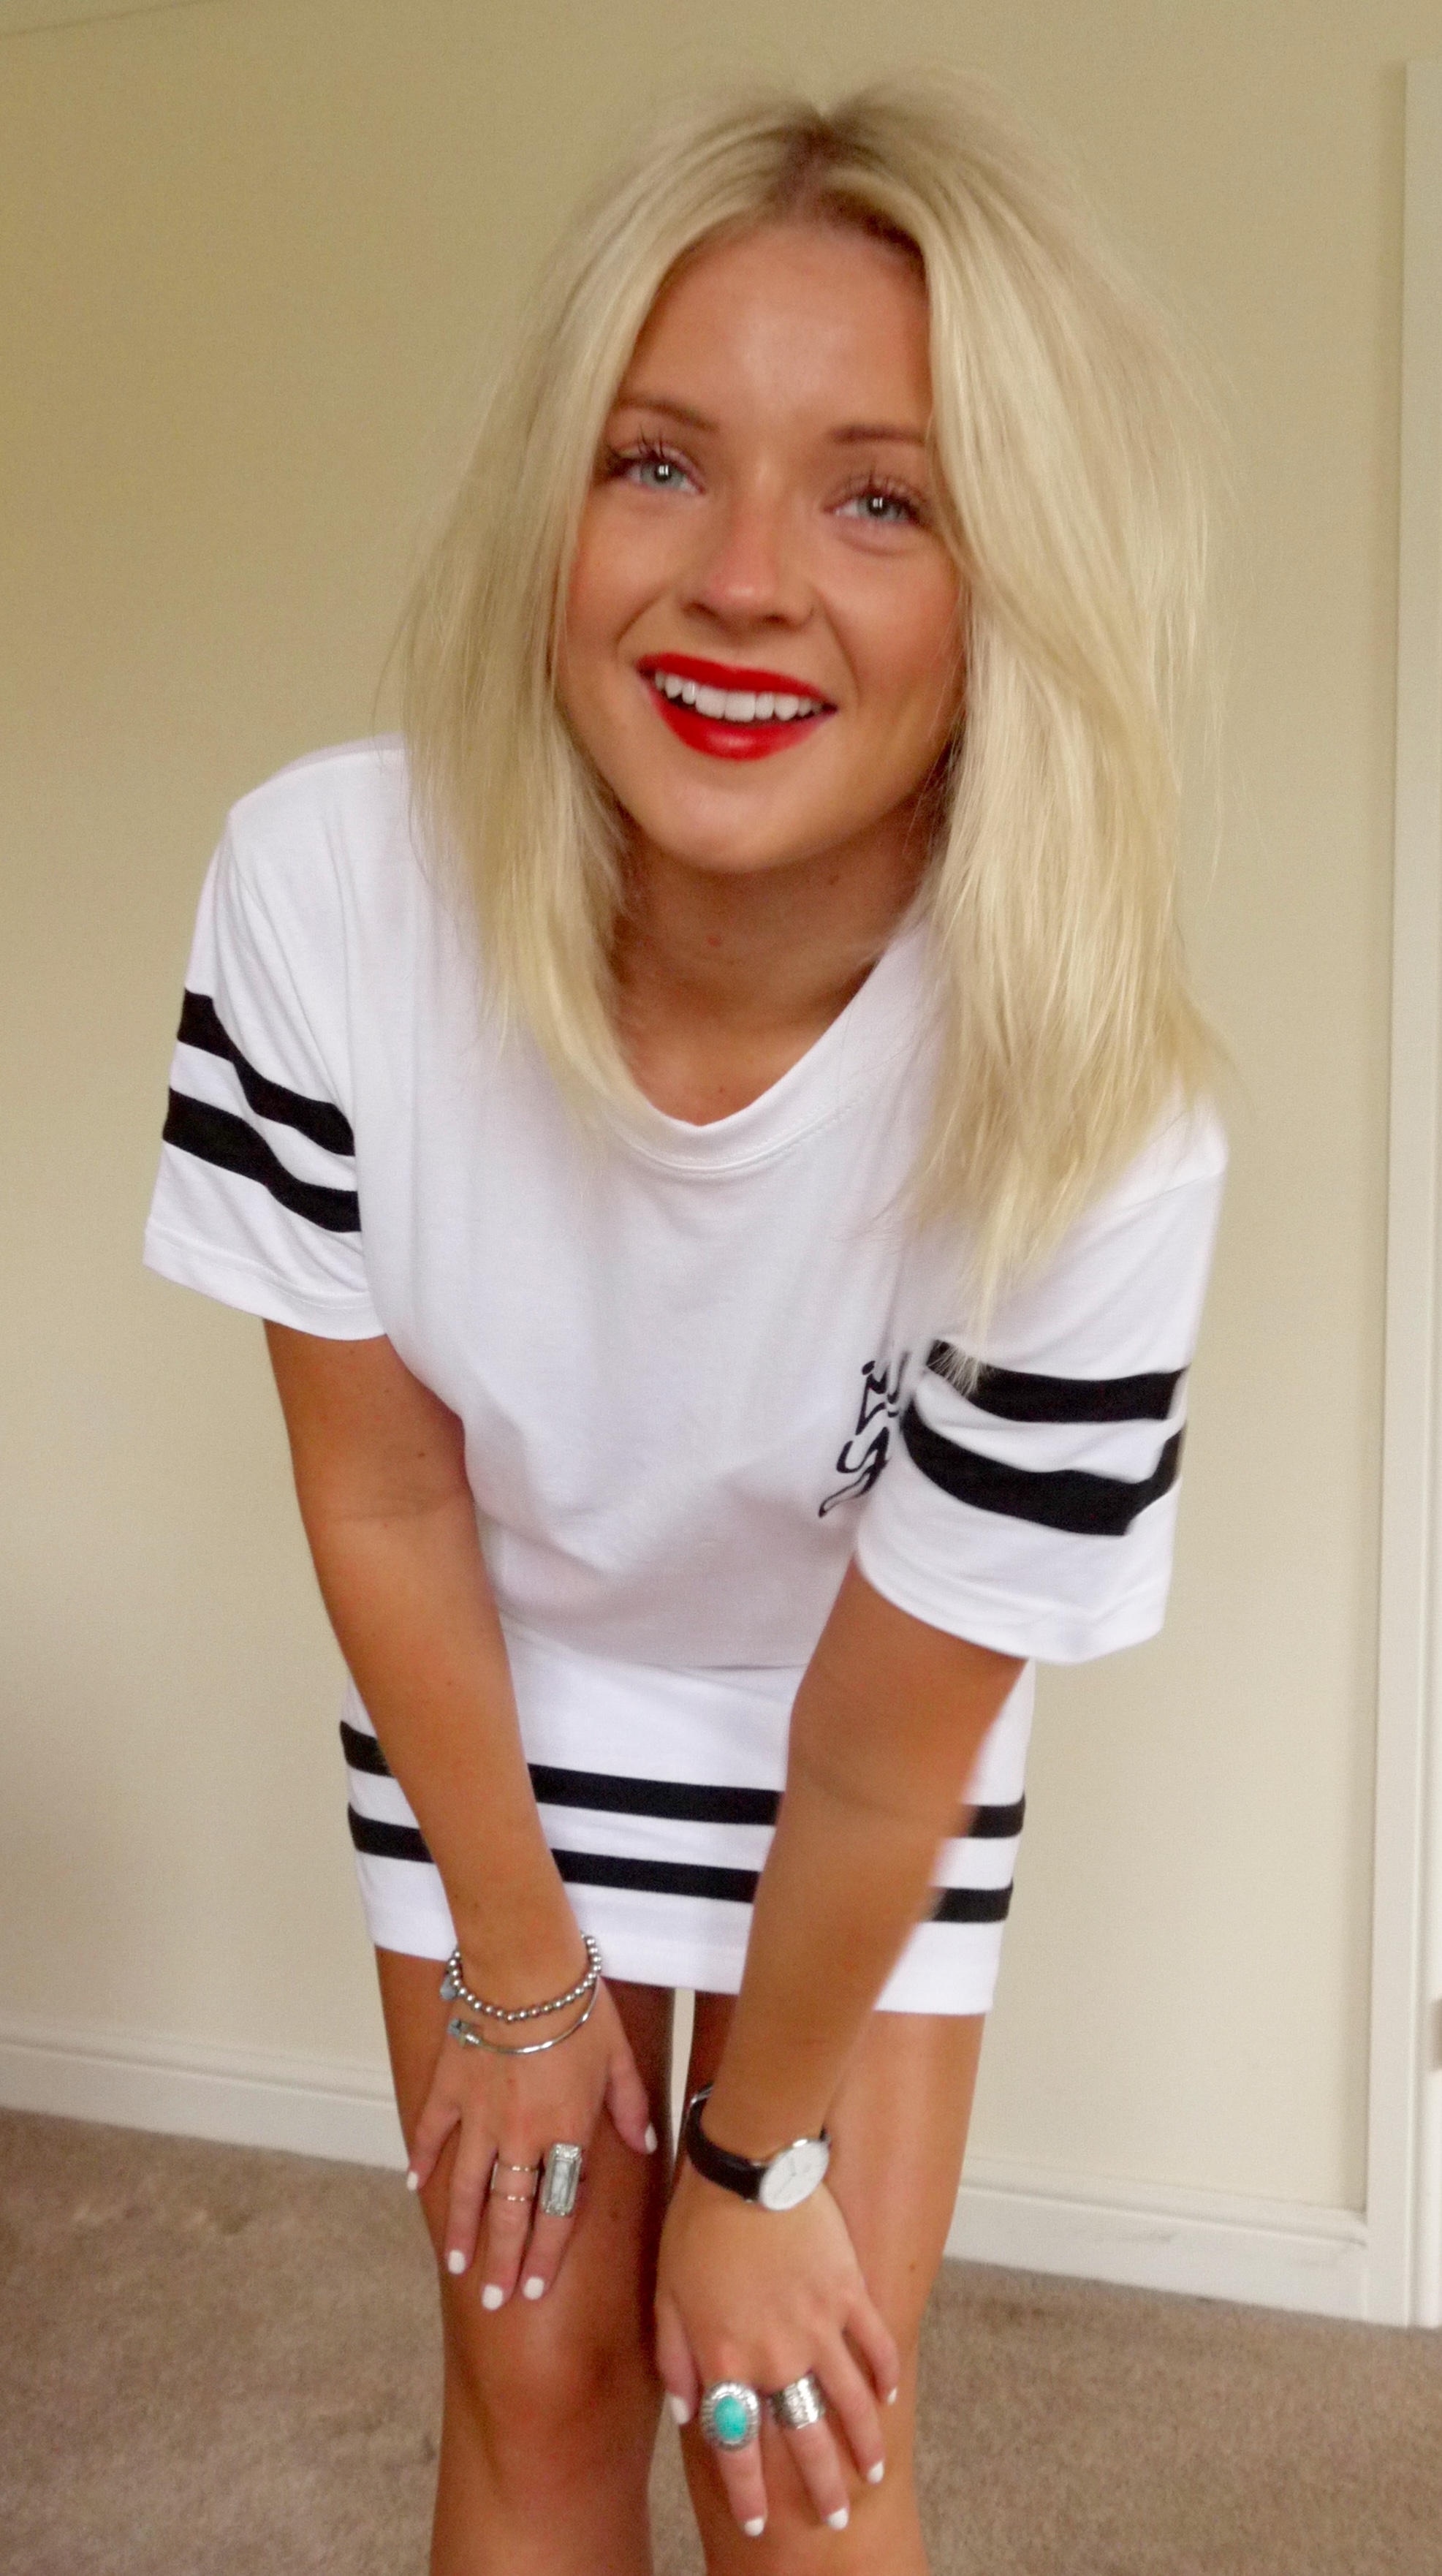 youngbritannia, WHITE TEE, BASEBALL TEE, STRIPE TEE, T SHIRT DRESS, BLAKC OLD SCHOOL VANS, BLONDE GIRL, LAURA BYRNES, LAURAS LITTLE LOCKET, SILVER RINGS, RED LIPS, FASHION BLOGGER,